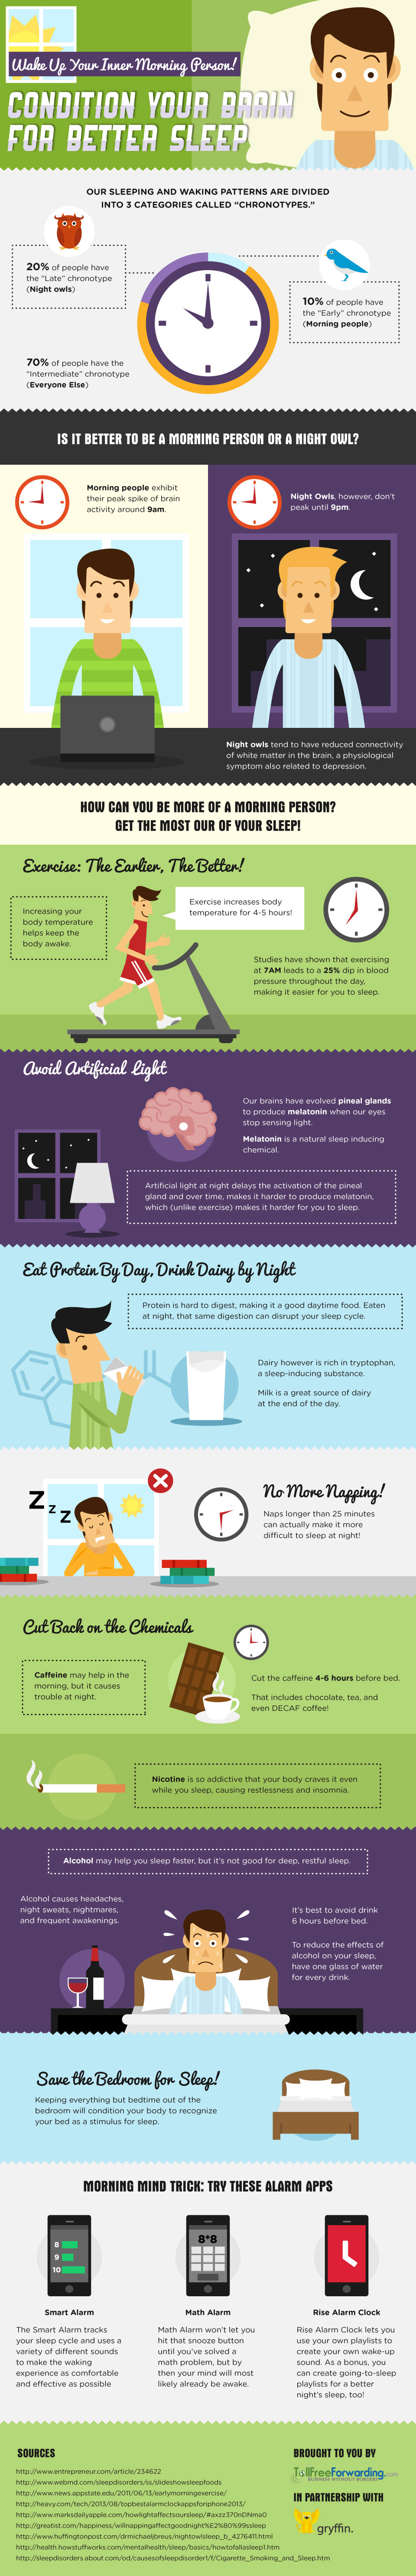 A Guide To Becoming A Morning Person - Infographic